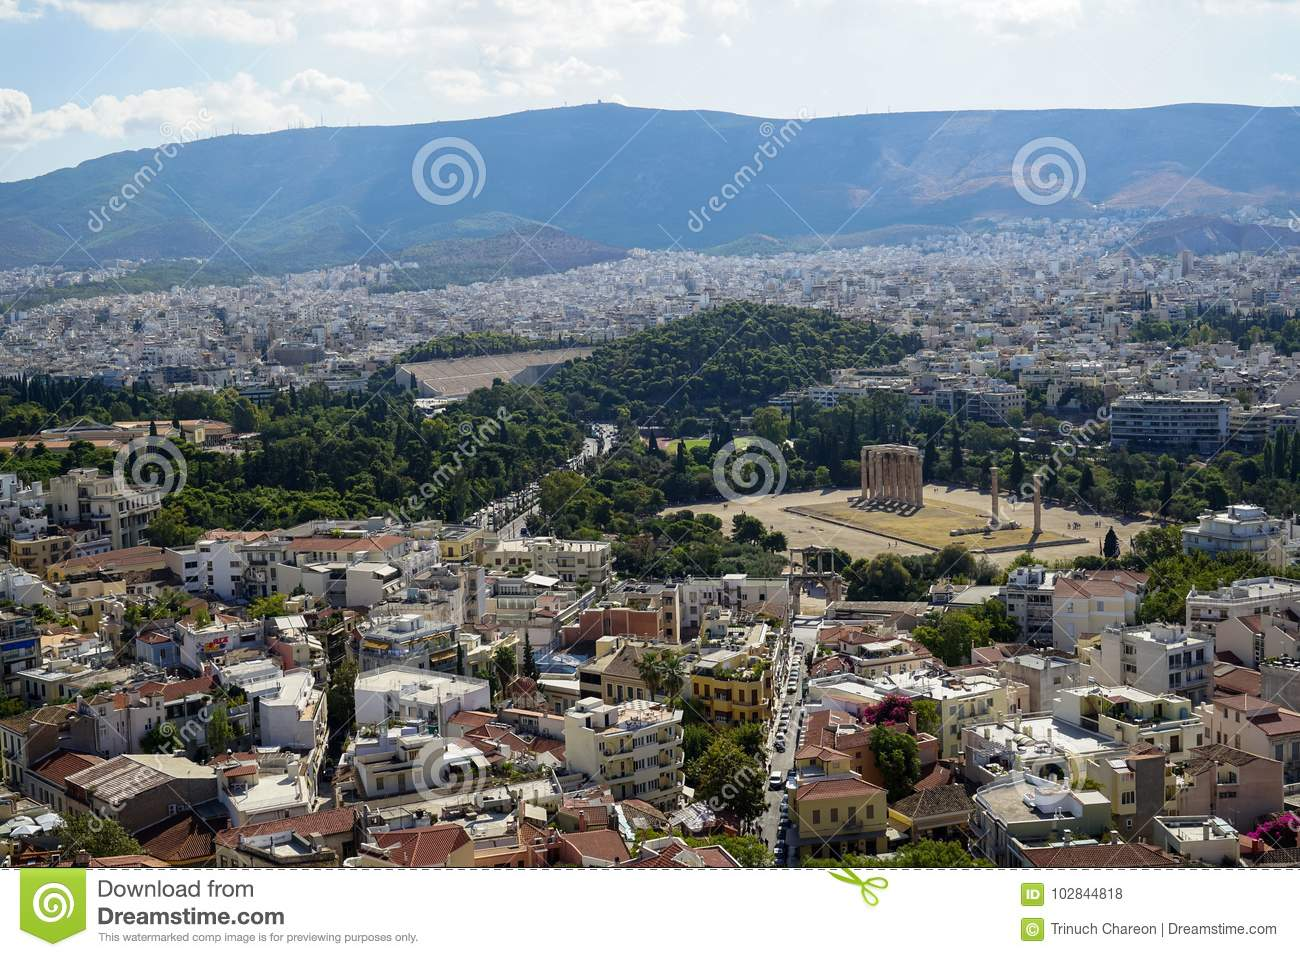 Panoramic view of beautiful Athens city from Acropolis seeing ancient ruin, building architecture, urban street, trees, mountain